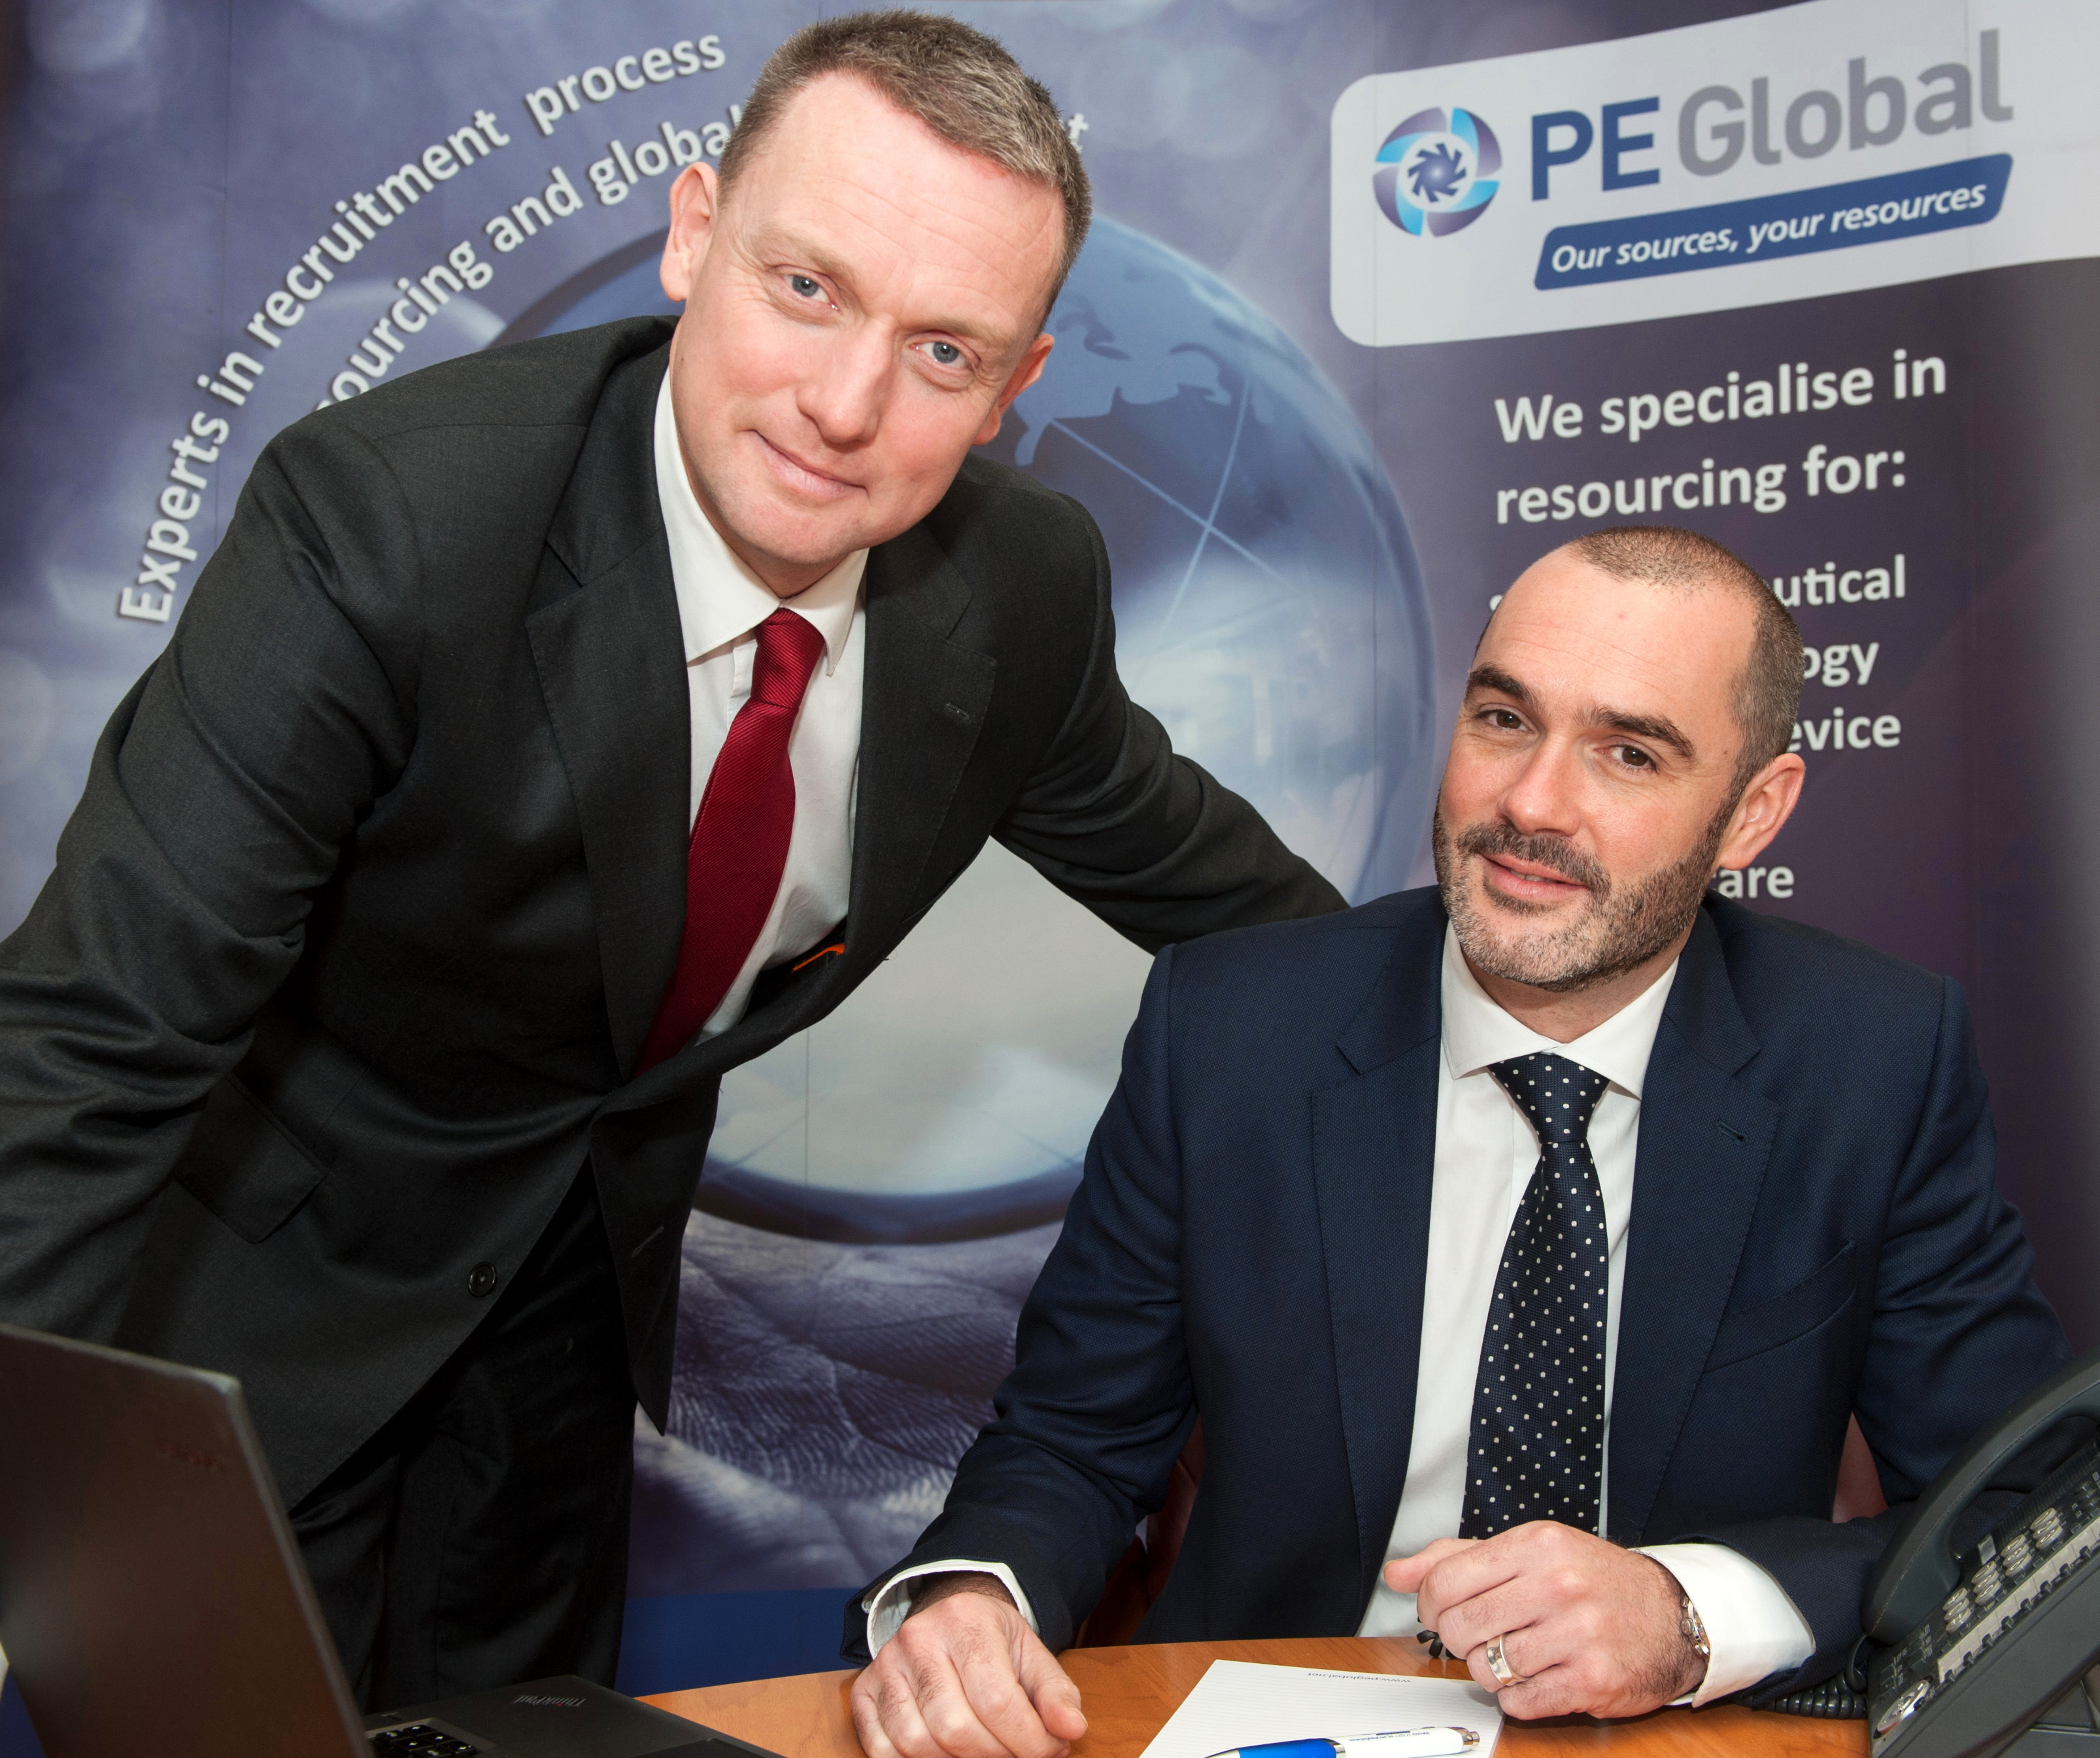 Cork based recruitment firm PE Global expands